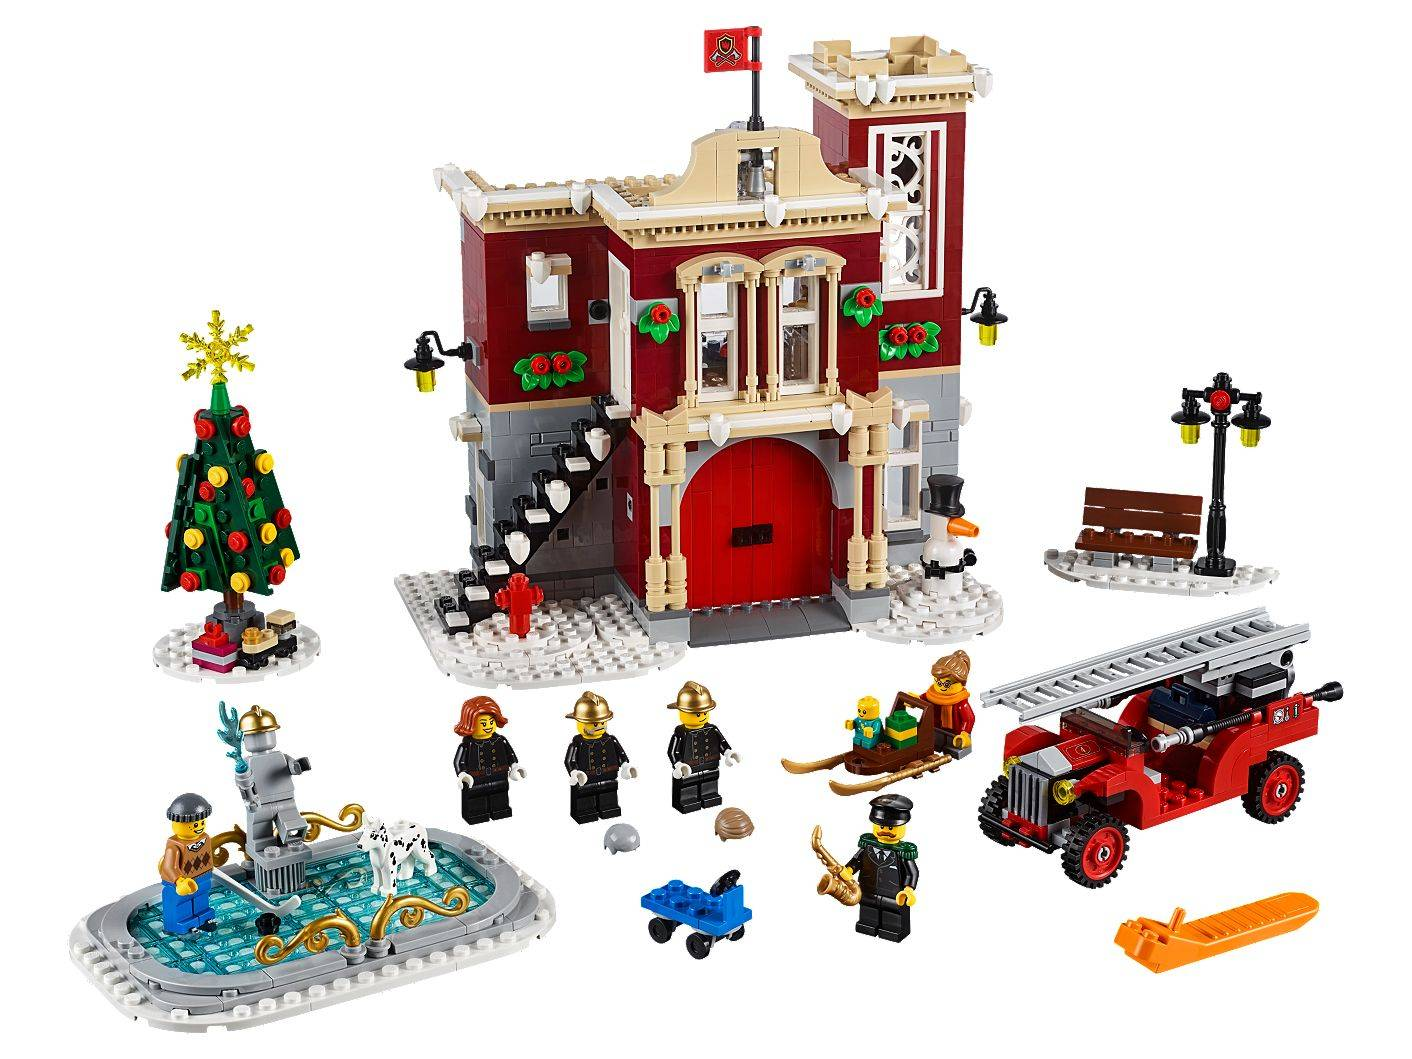 LEGO Winter Village Fire Station 10263